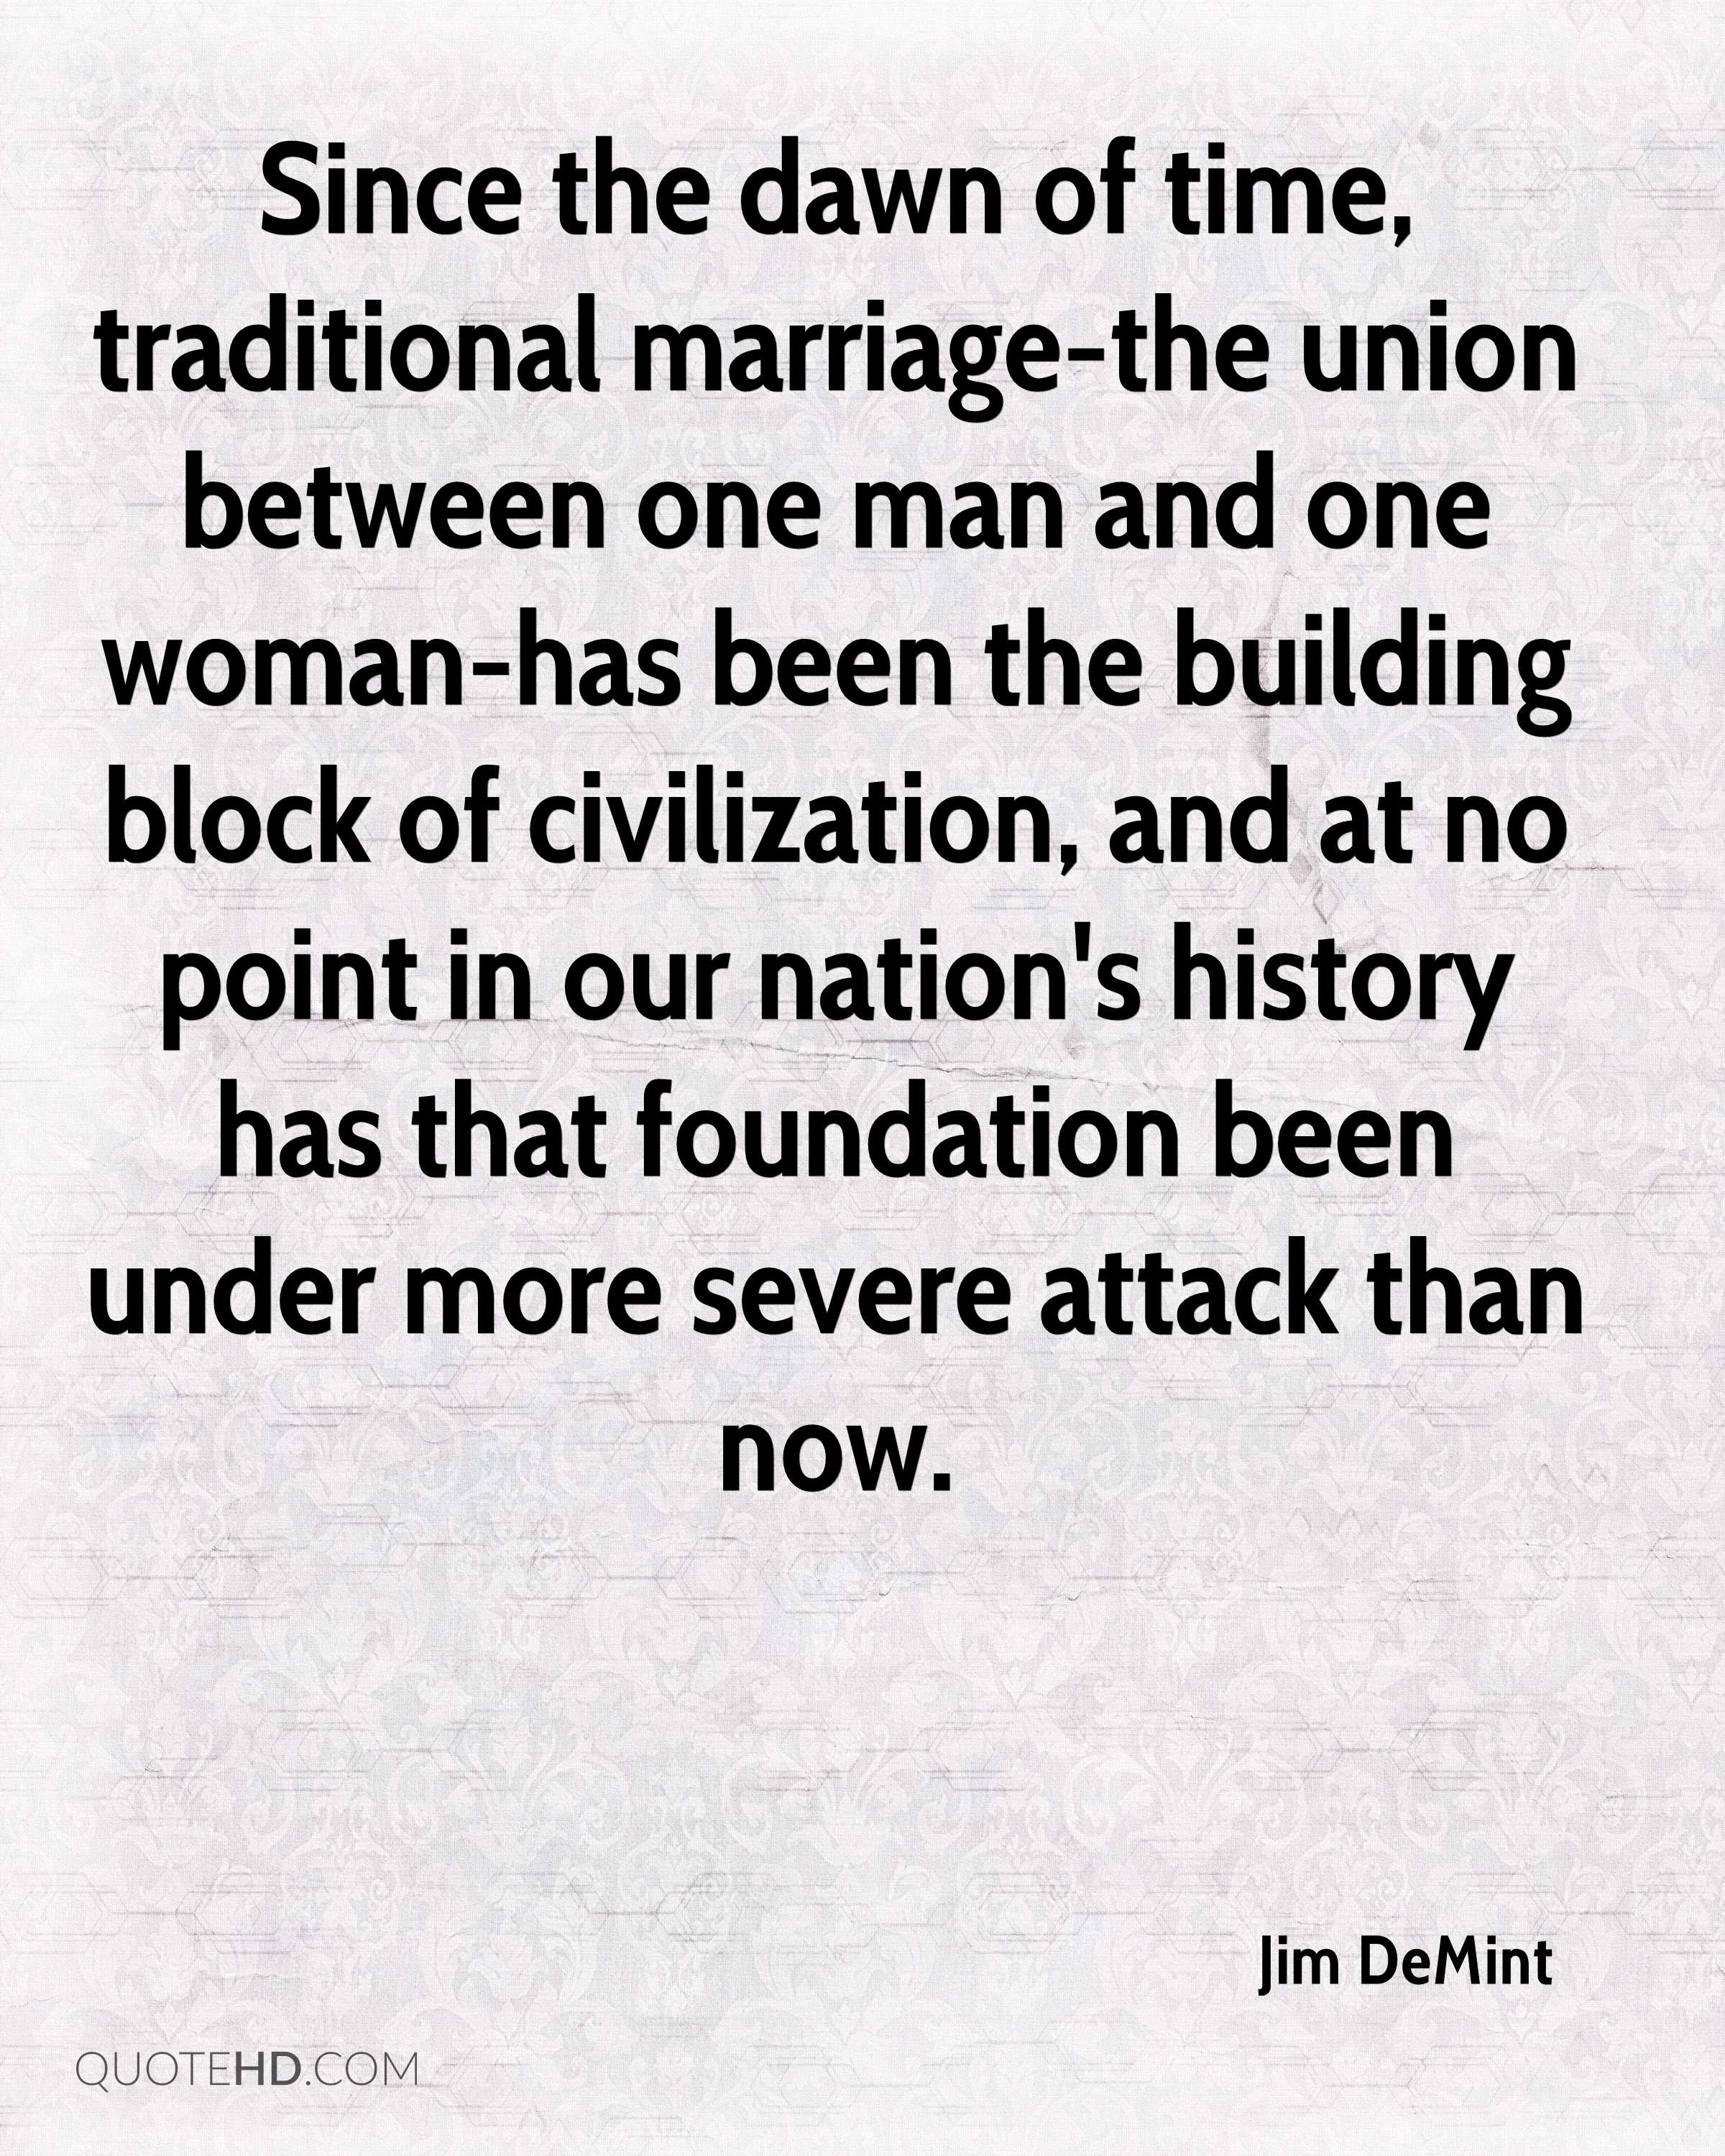 Since the dawn of time, traditional marriage-the union between one man and one woman-has been the building block of civilization, and at no point in our nation's history has that foundation been under more severe attack than now.